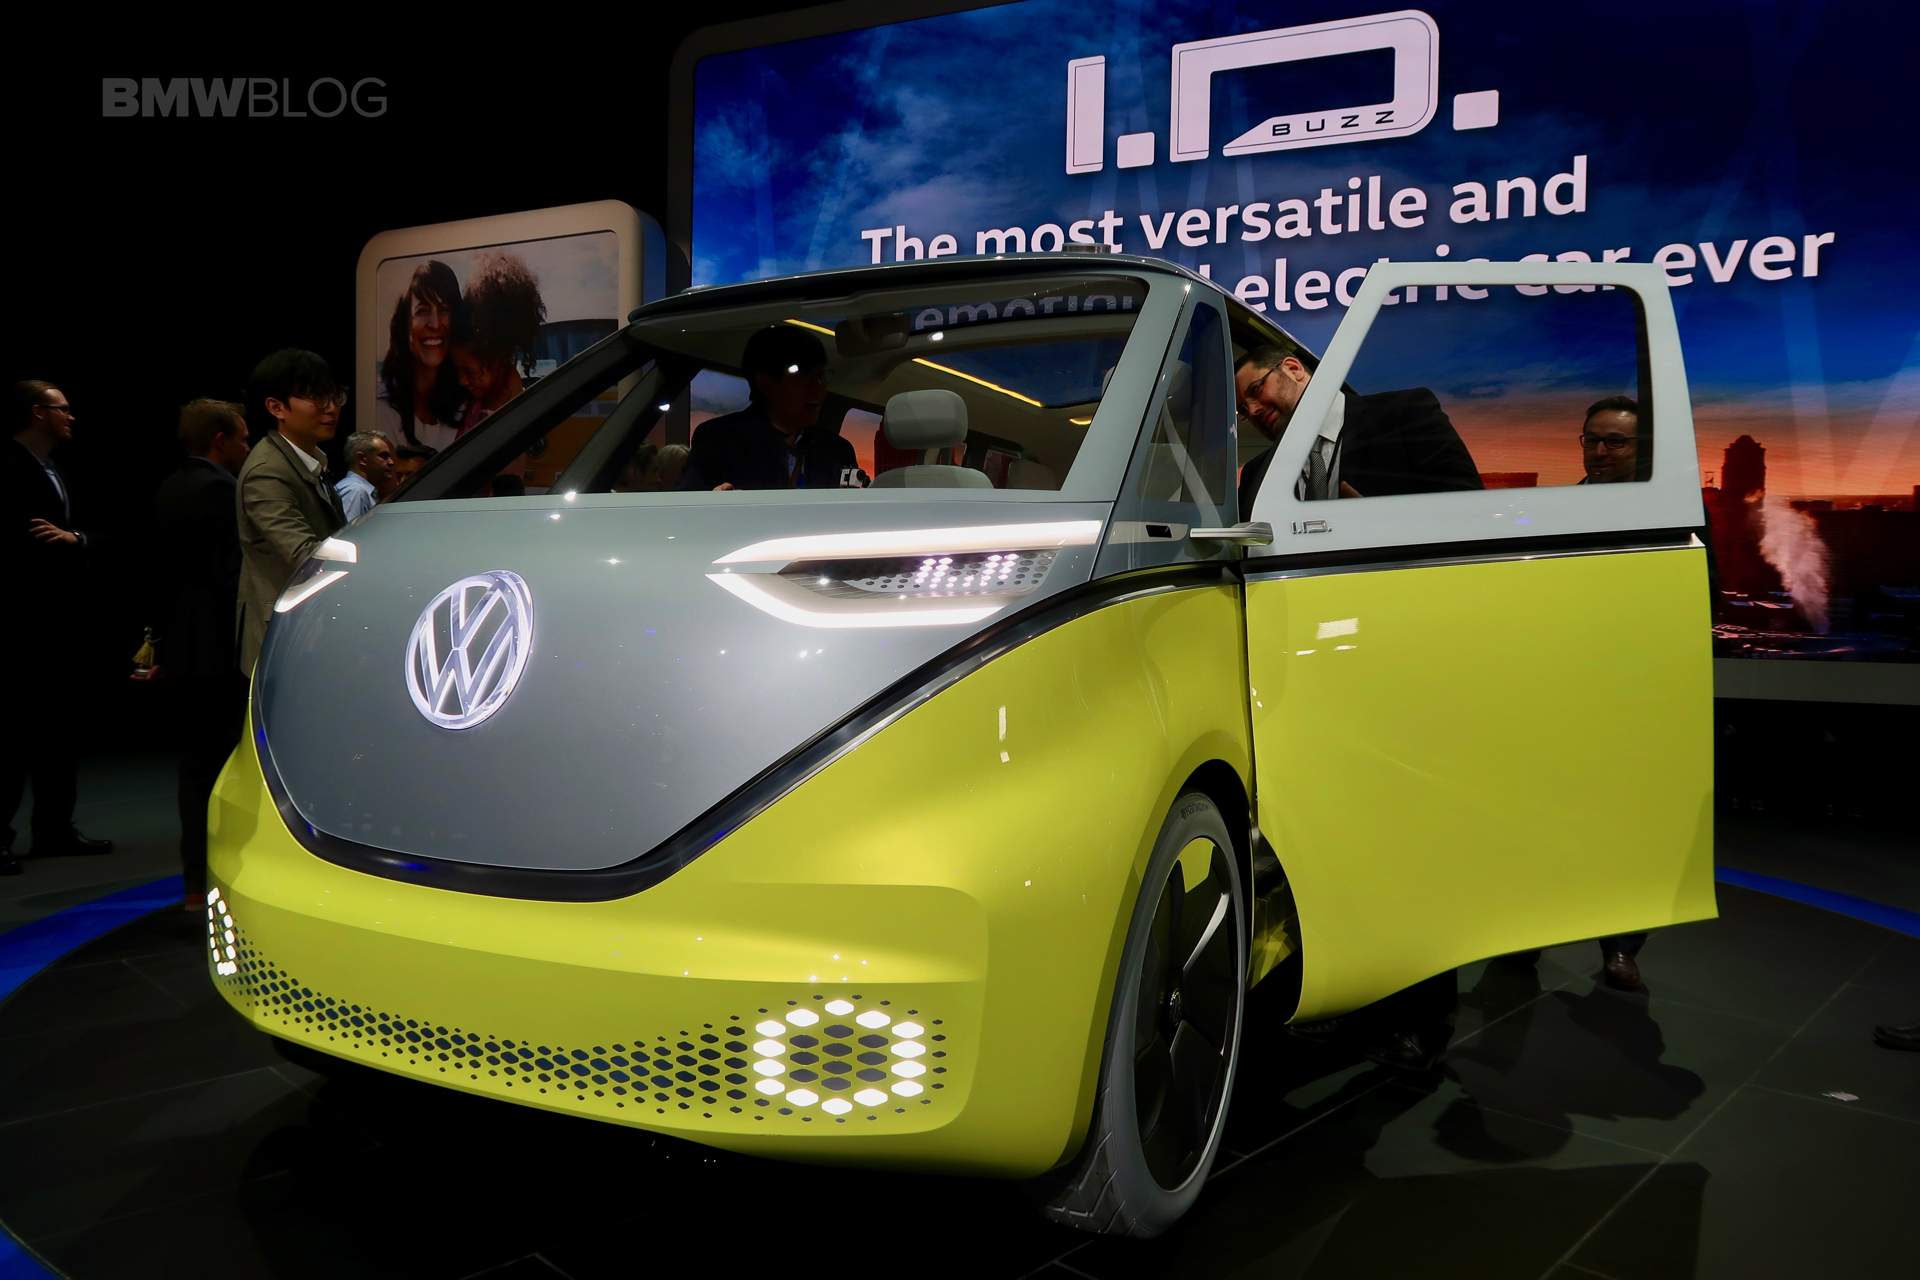 Vw Launches The Electric I D Buzz At The 2017 Detroit